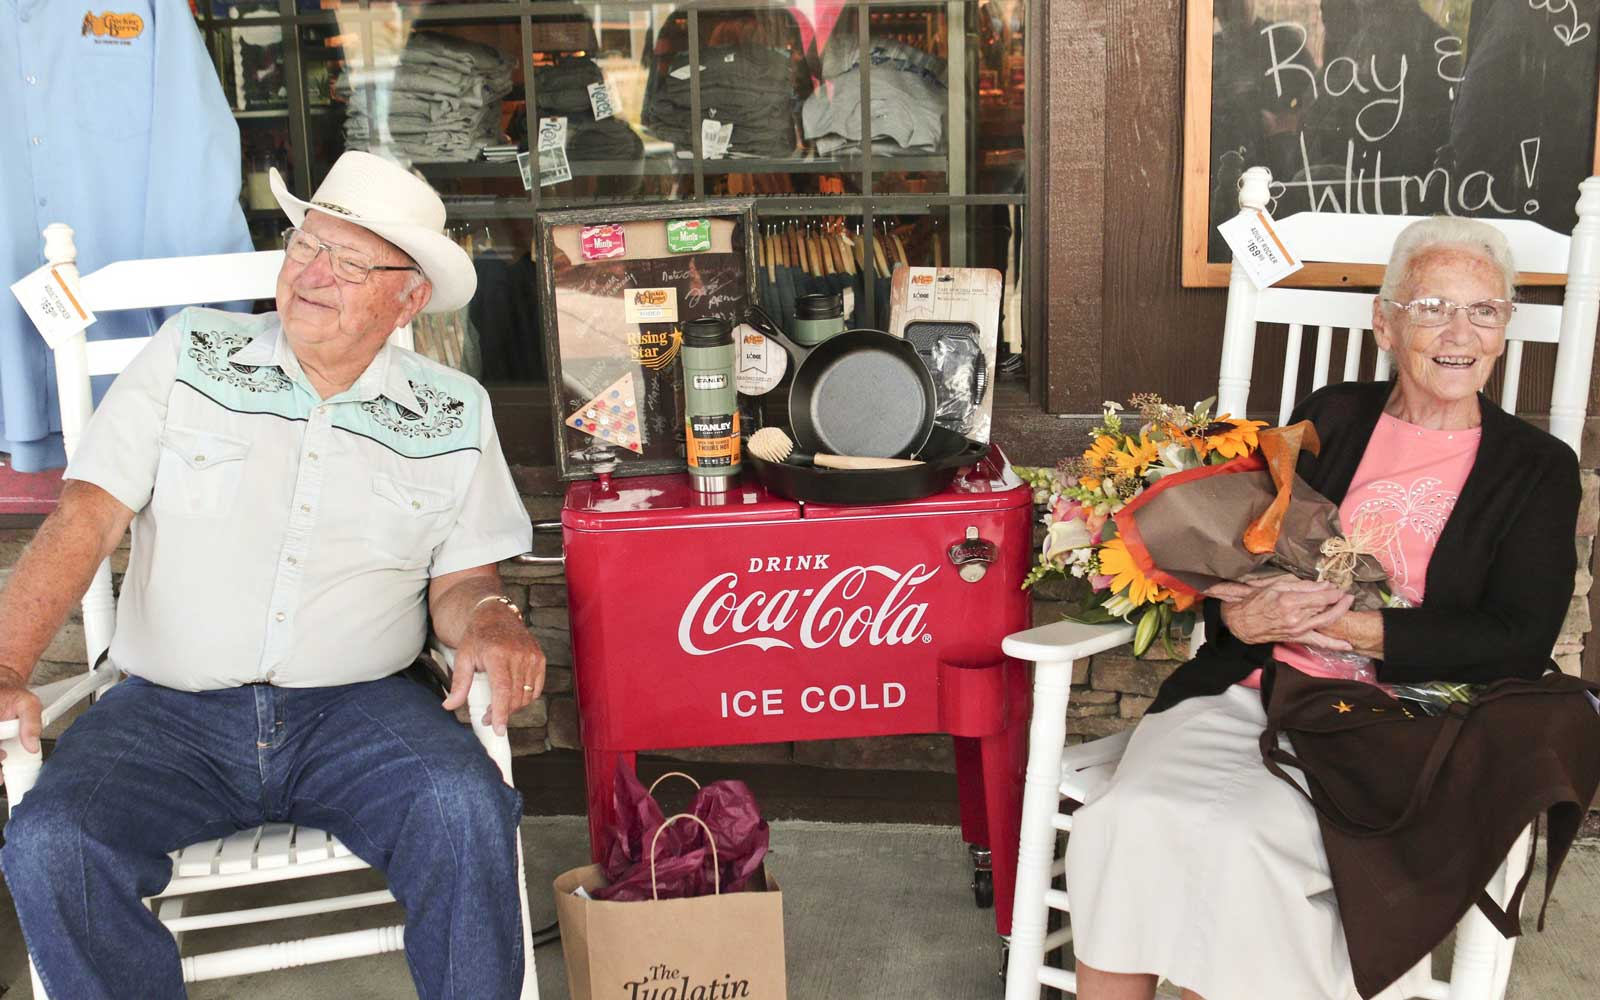 Couple Falls in Love at Cracker Barrel